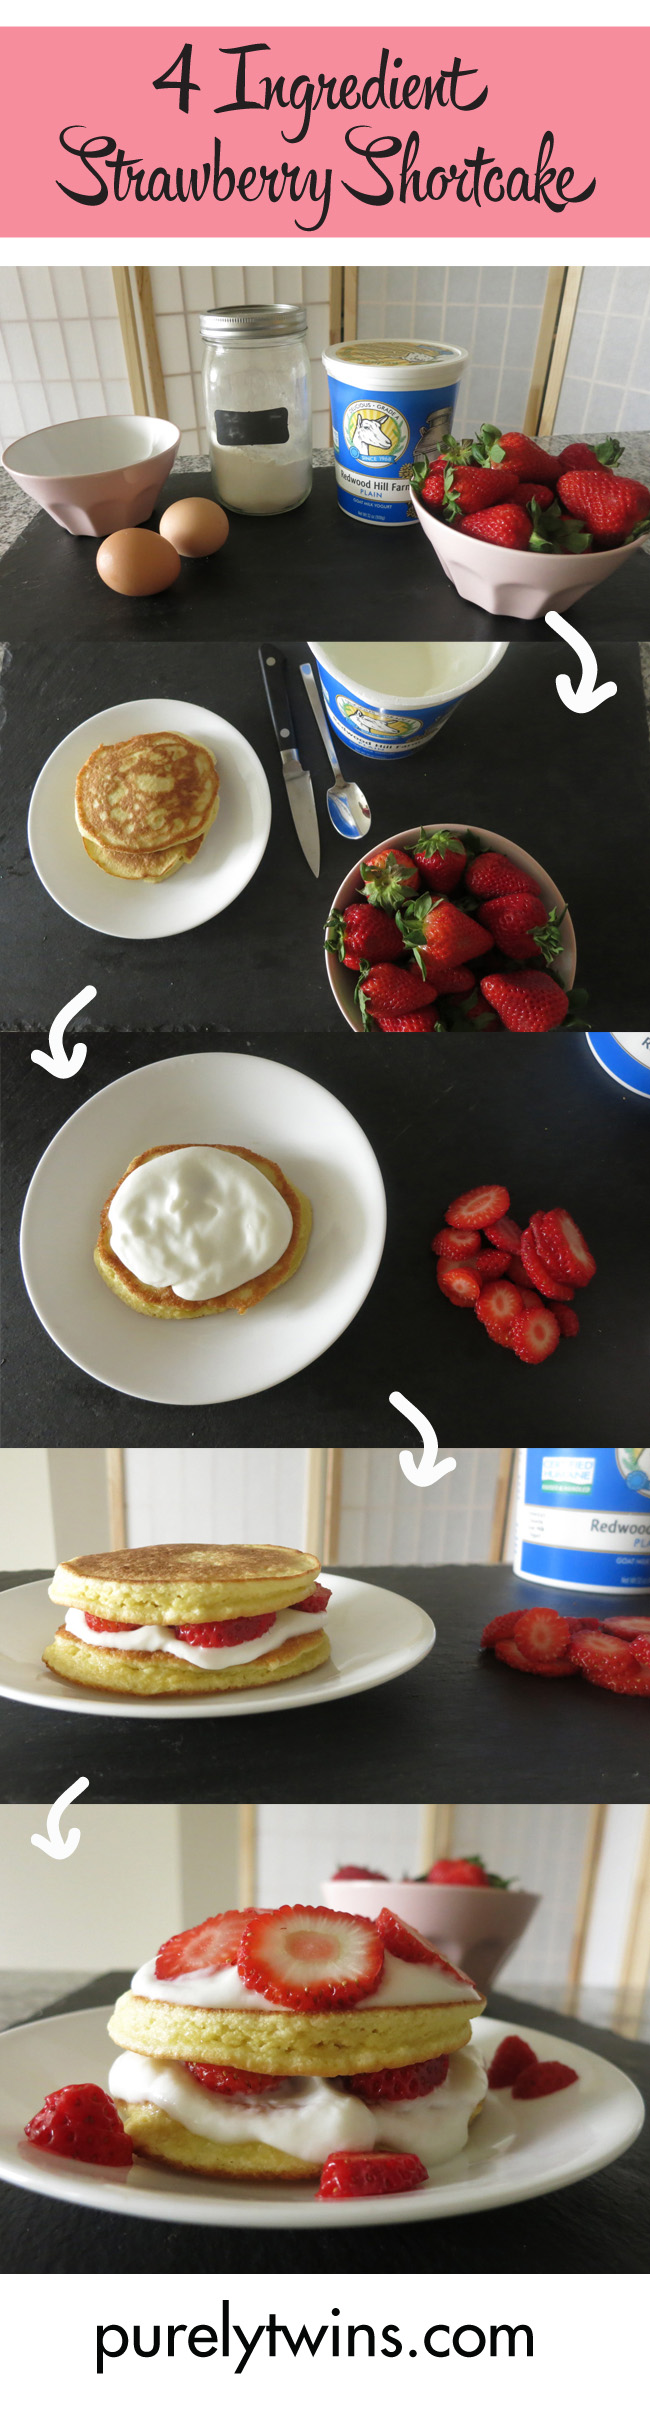 4 ingredient strawberry shortcake recipe purelytwins